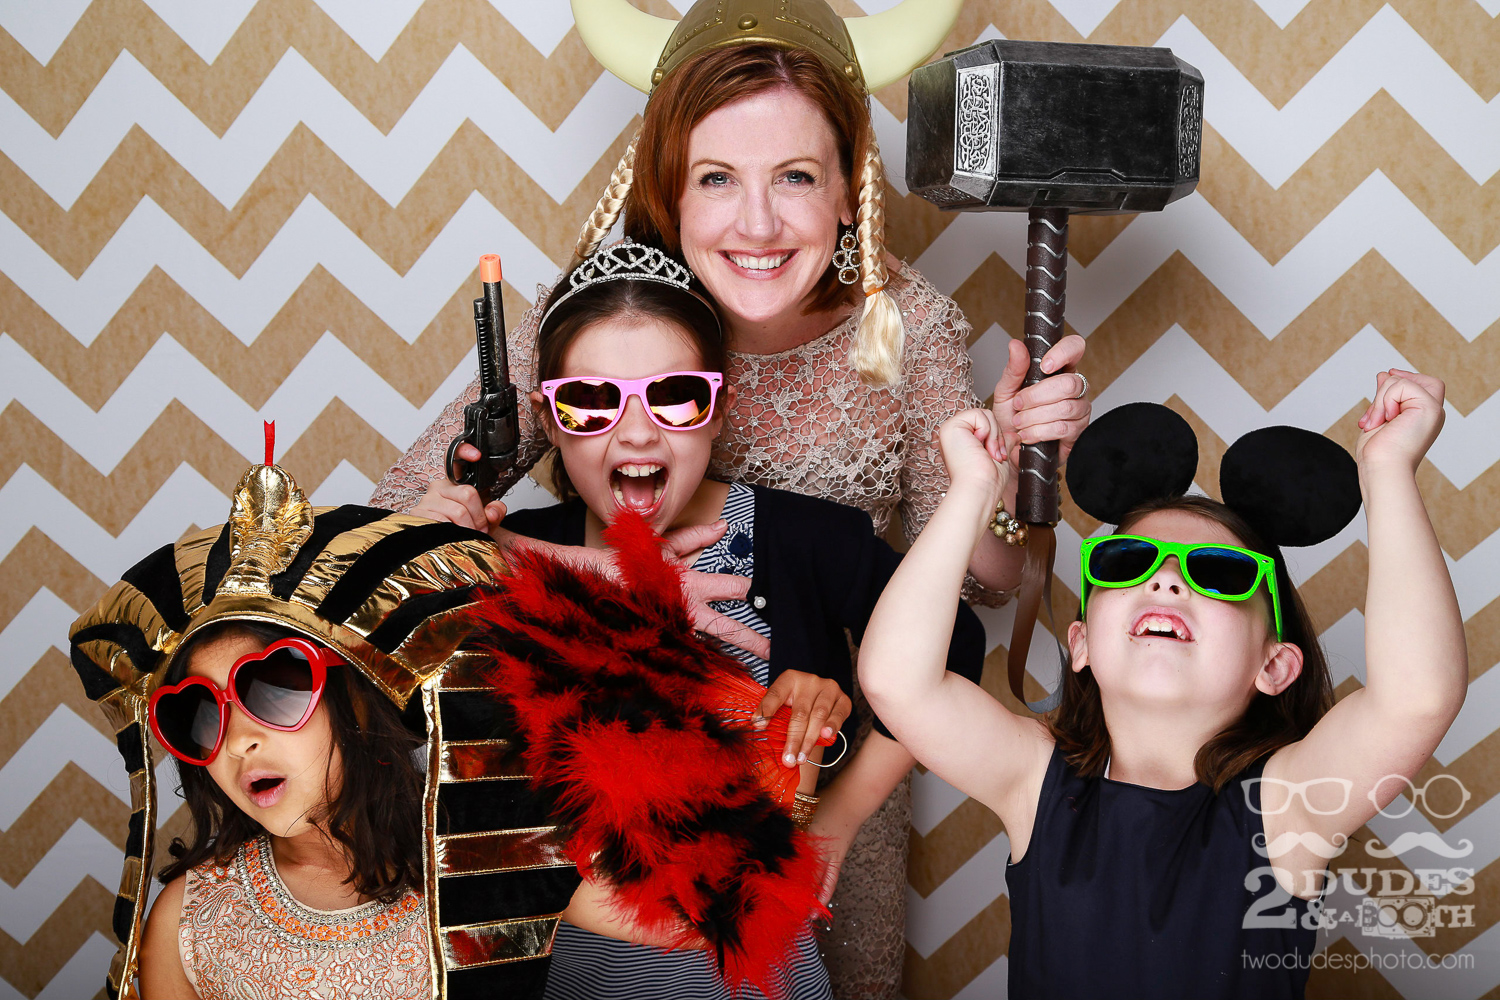 Photo Booth company, Best photo booth in San Francisco, Best Photo Booth Bay Area, Best photo booth east bay